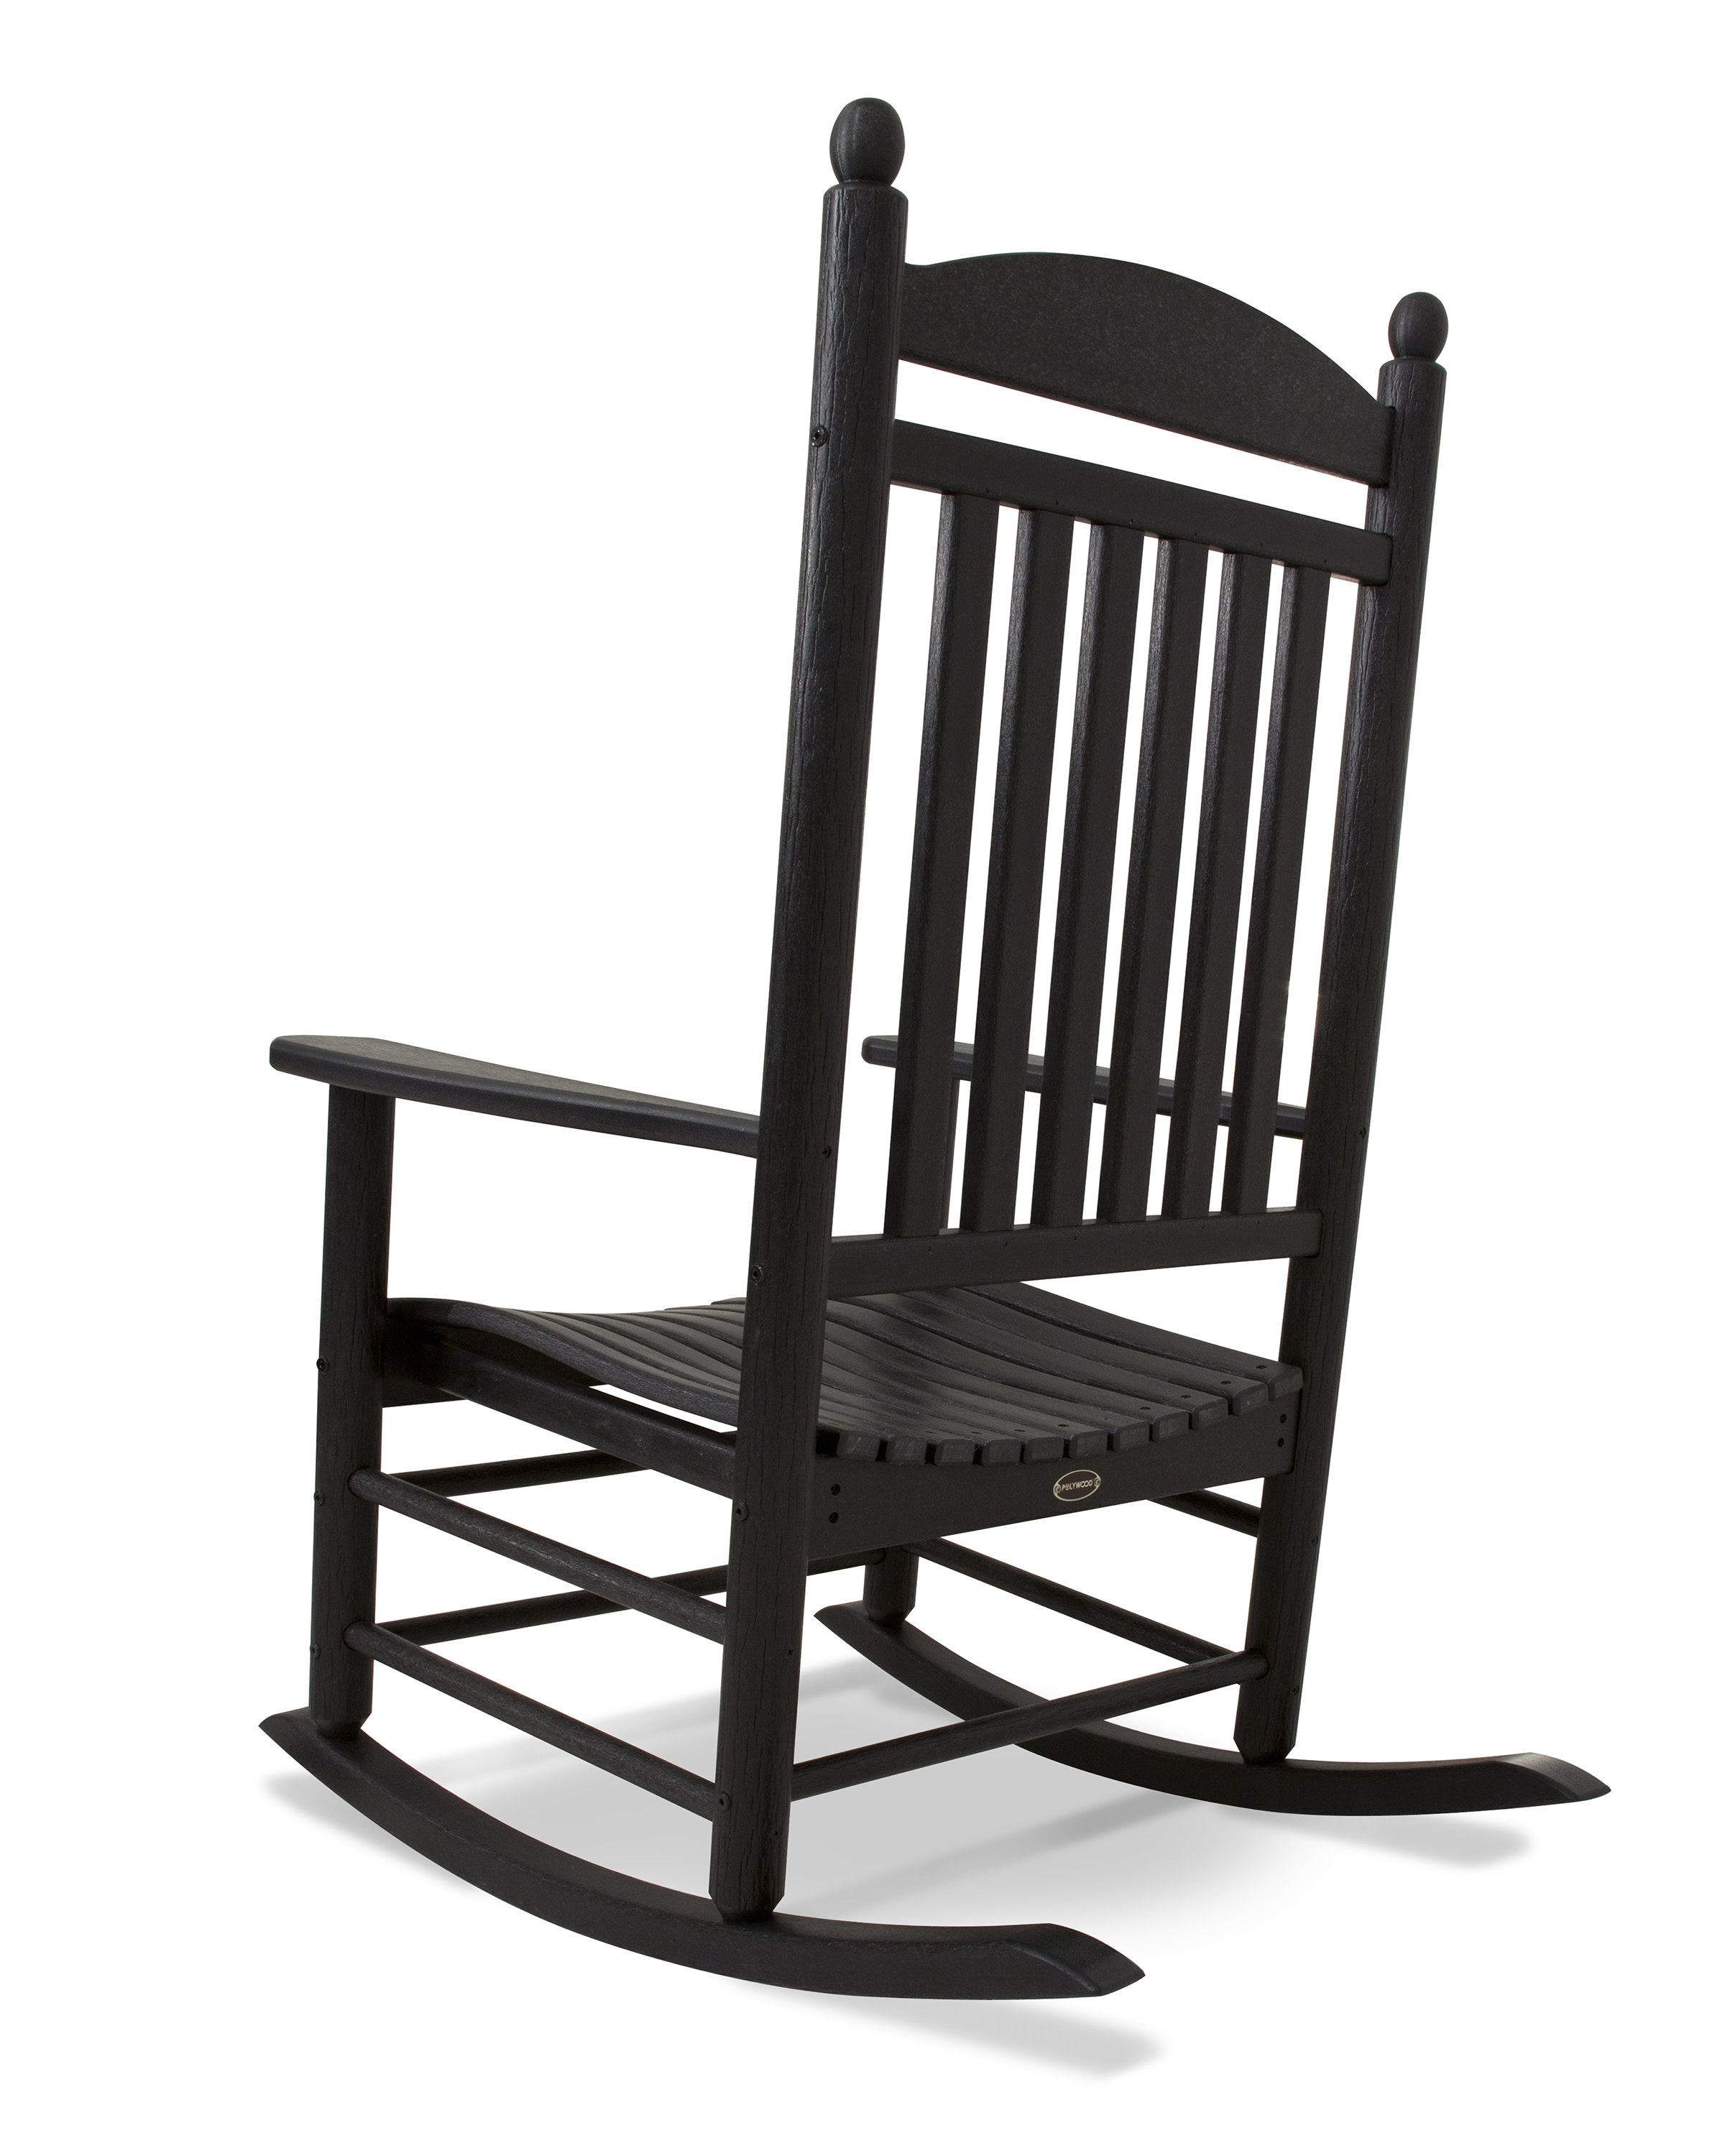 This Traditional Rocker Is Enhanced With Unique Detailing That Gives It Both Warmth And Sophistication. Polywood Furniture Is Constructed Of Solid Polywood Lumber That